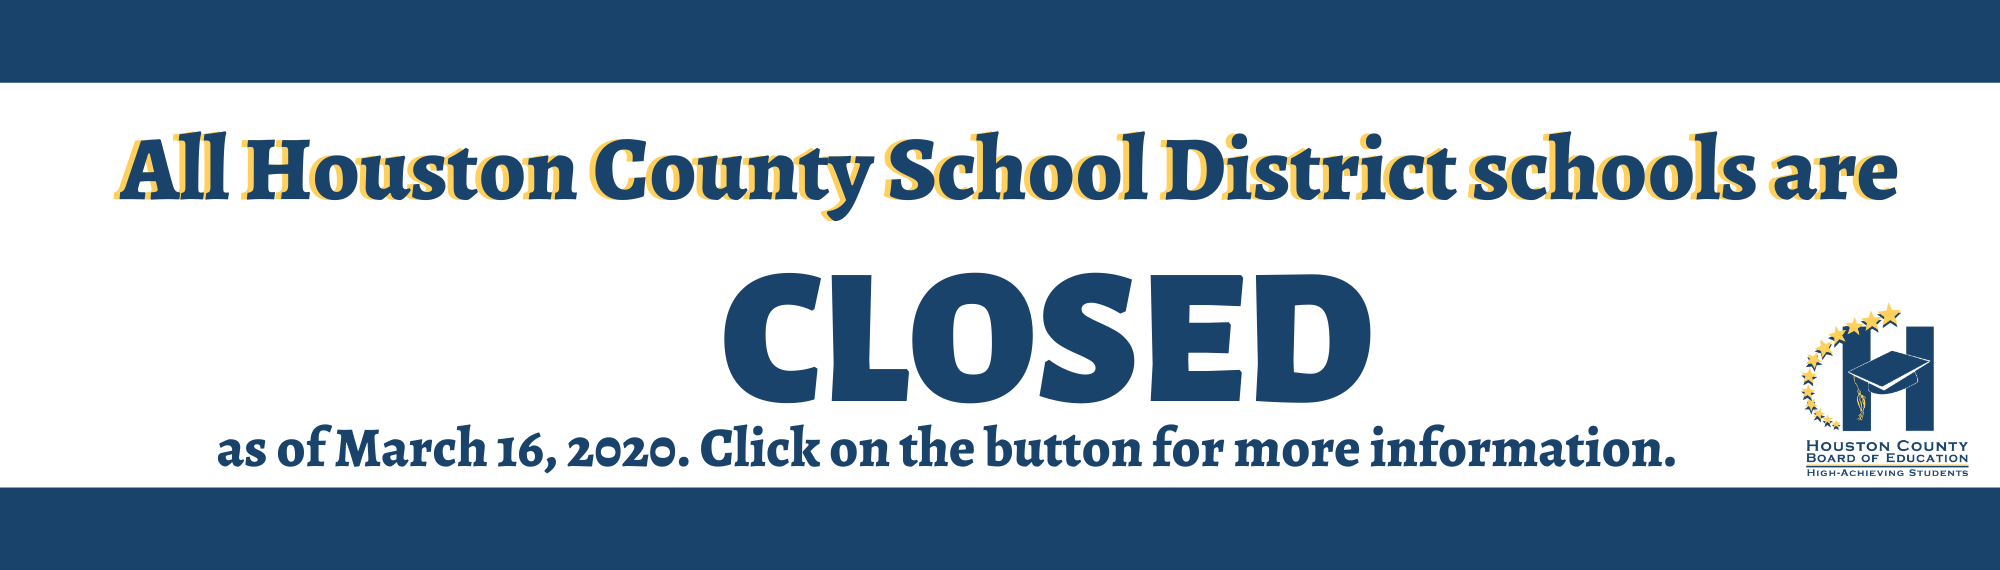 All schools are closed as of March 16, 2020.  Click on the button for more information.